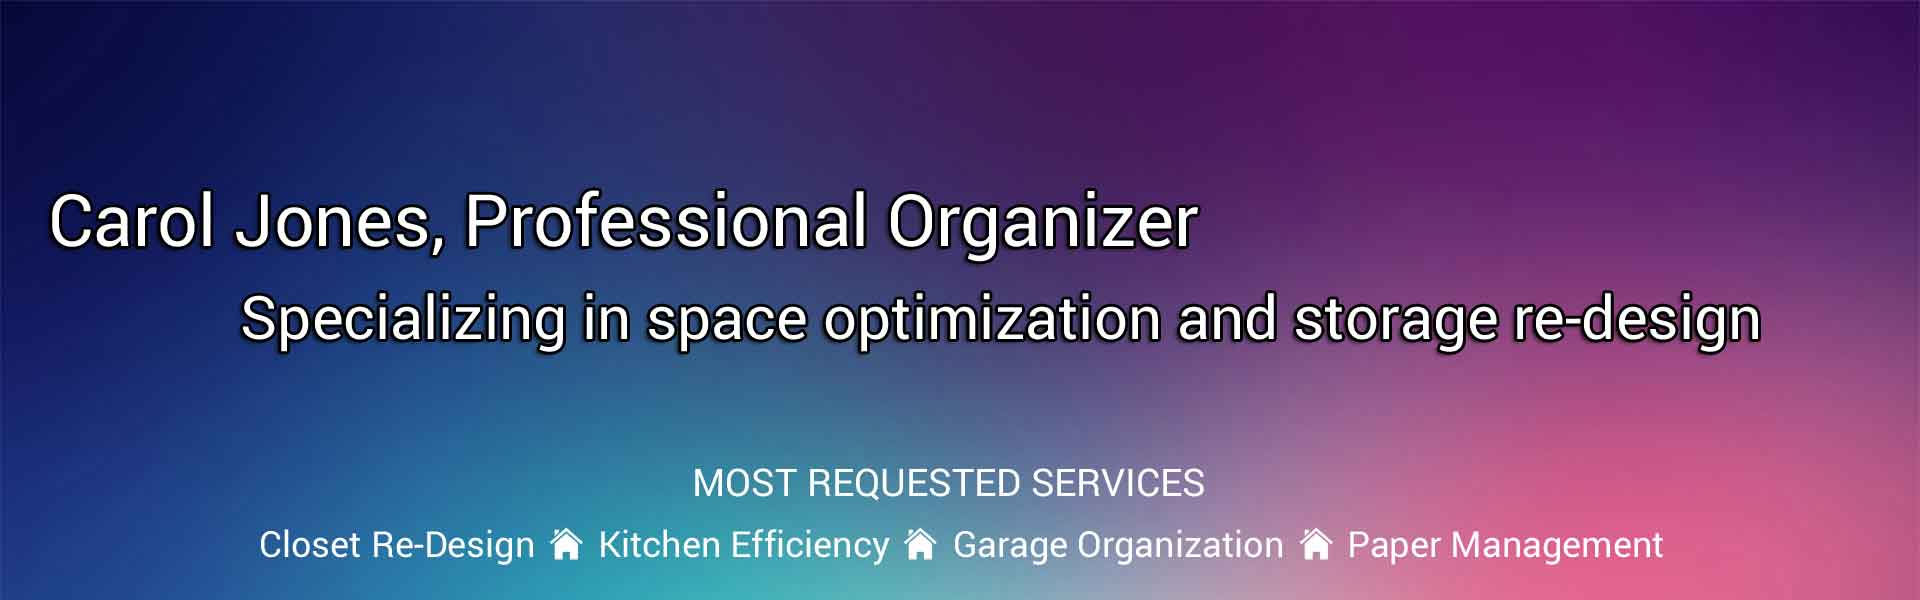 Carol Jones, Professional Organizer Specializing in space optimization and storage re-design